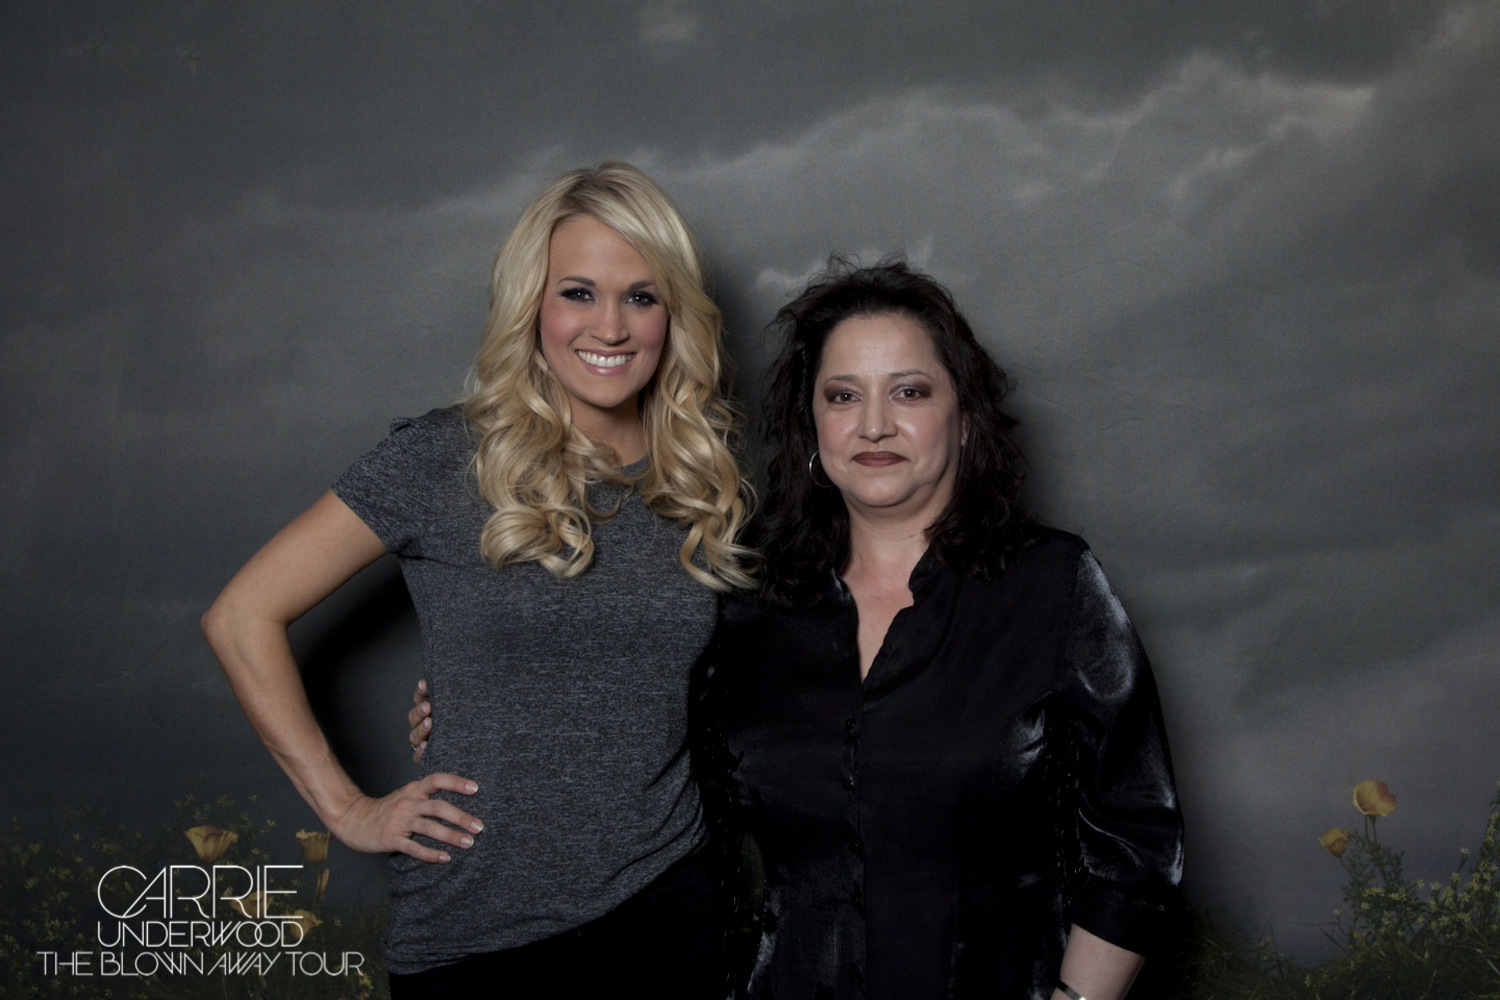 3-2-13 - Finally got to meet my true inspiration, Carrie, and I couldn't say a word and on the verge of tears, so I can only hope I get a second chance to express what you mean to me. Thank you for inspiring me!! :)